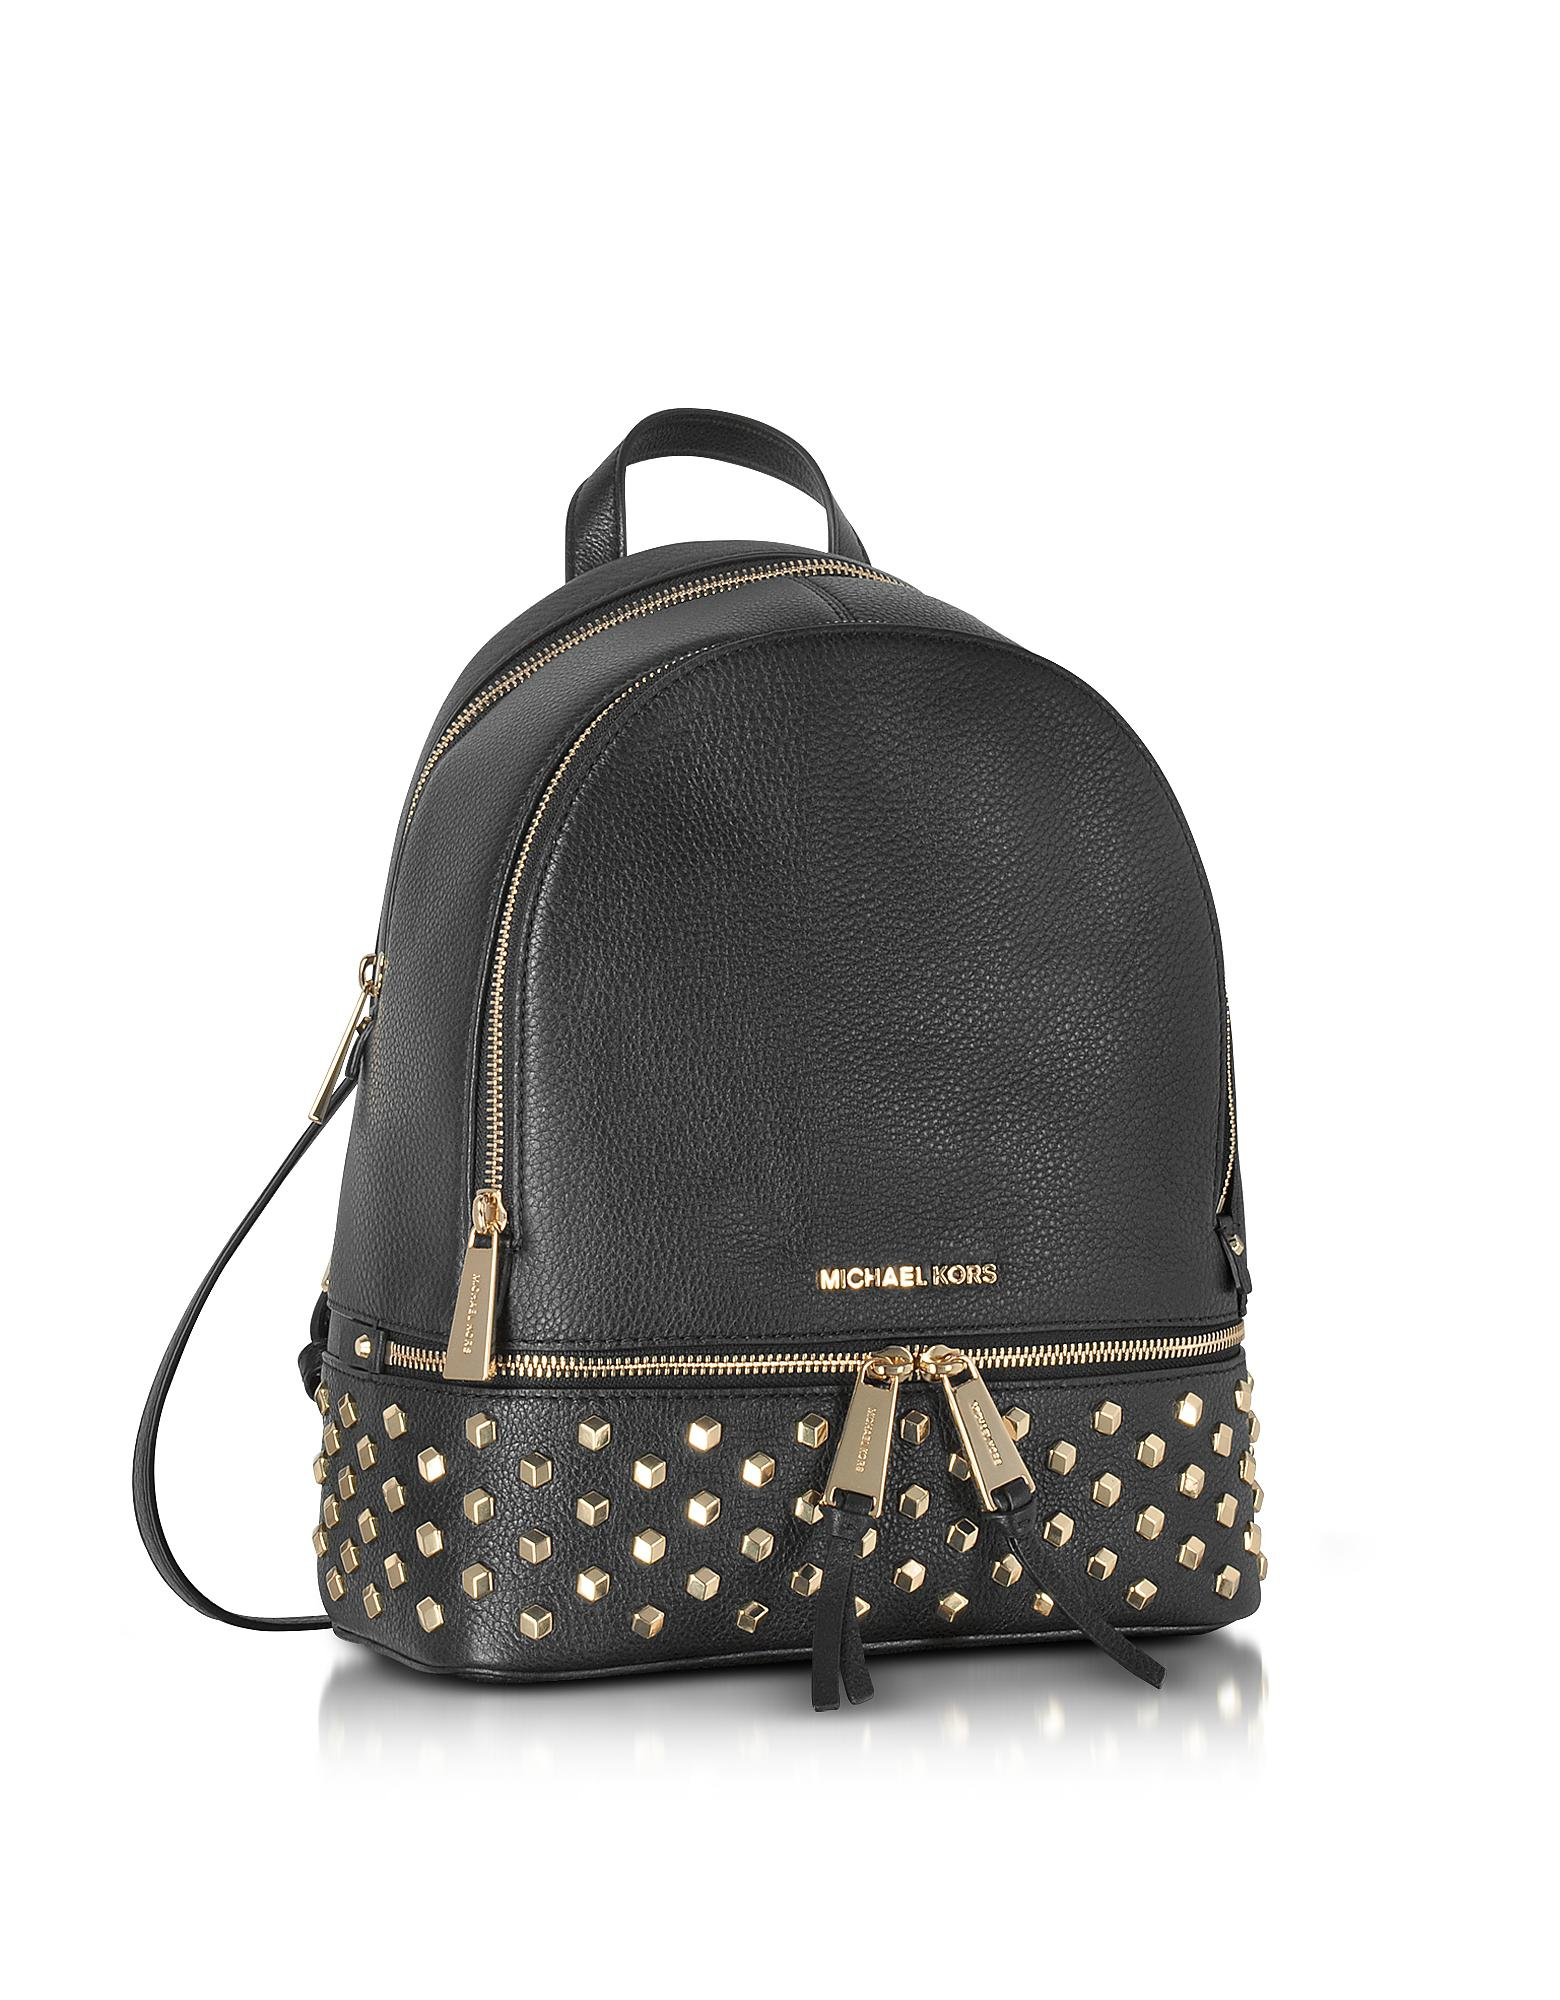 741c232536490 Lyst - Michael Kors Rhea Zip Black Leather Medium Backpack W studs ...